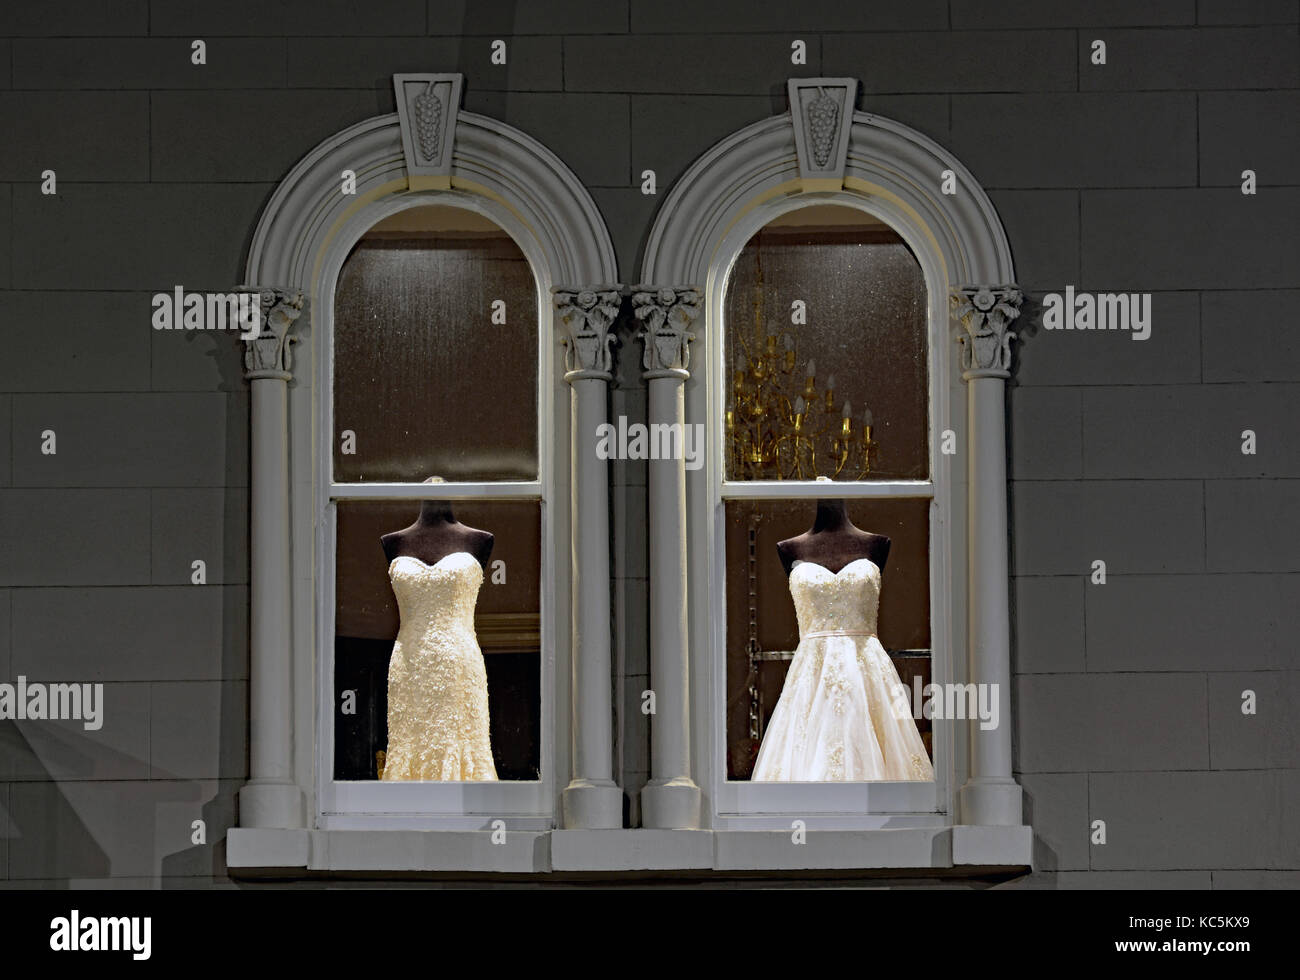 Bridal mannequins in window display - Stock Image